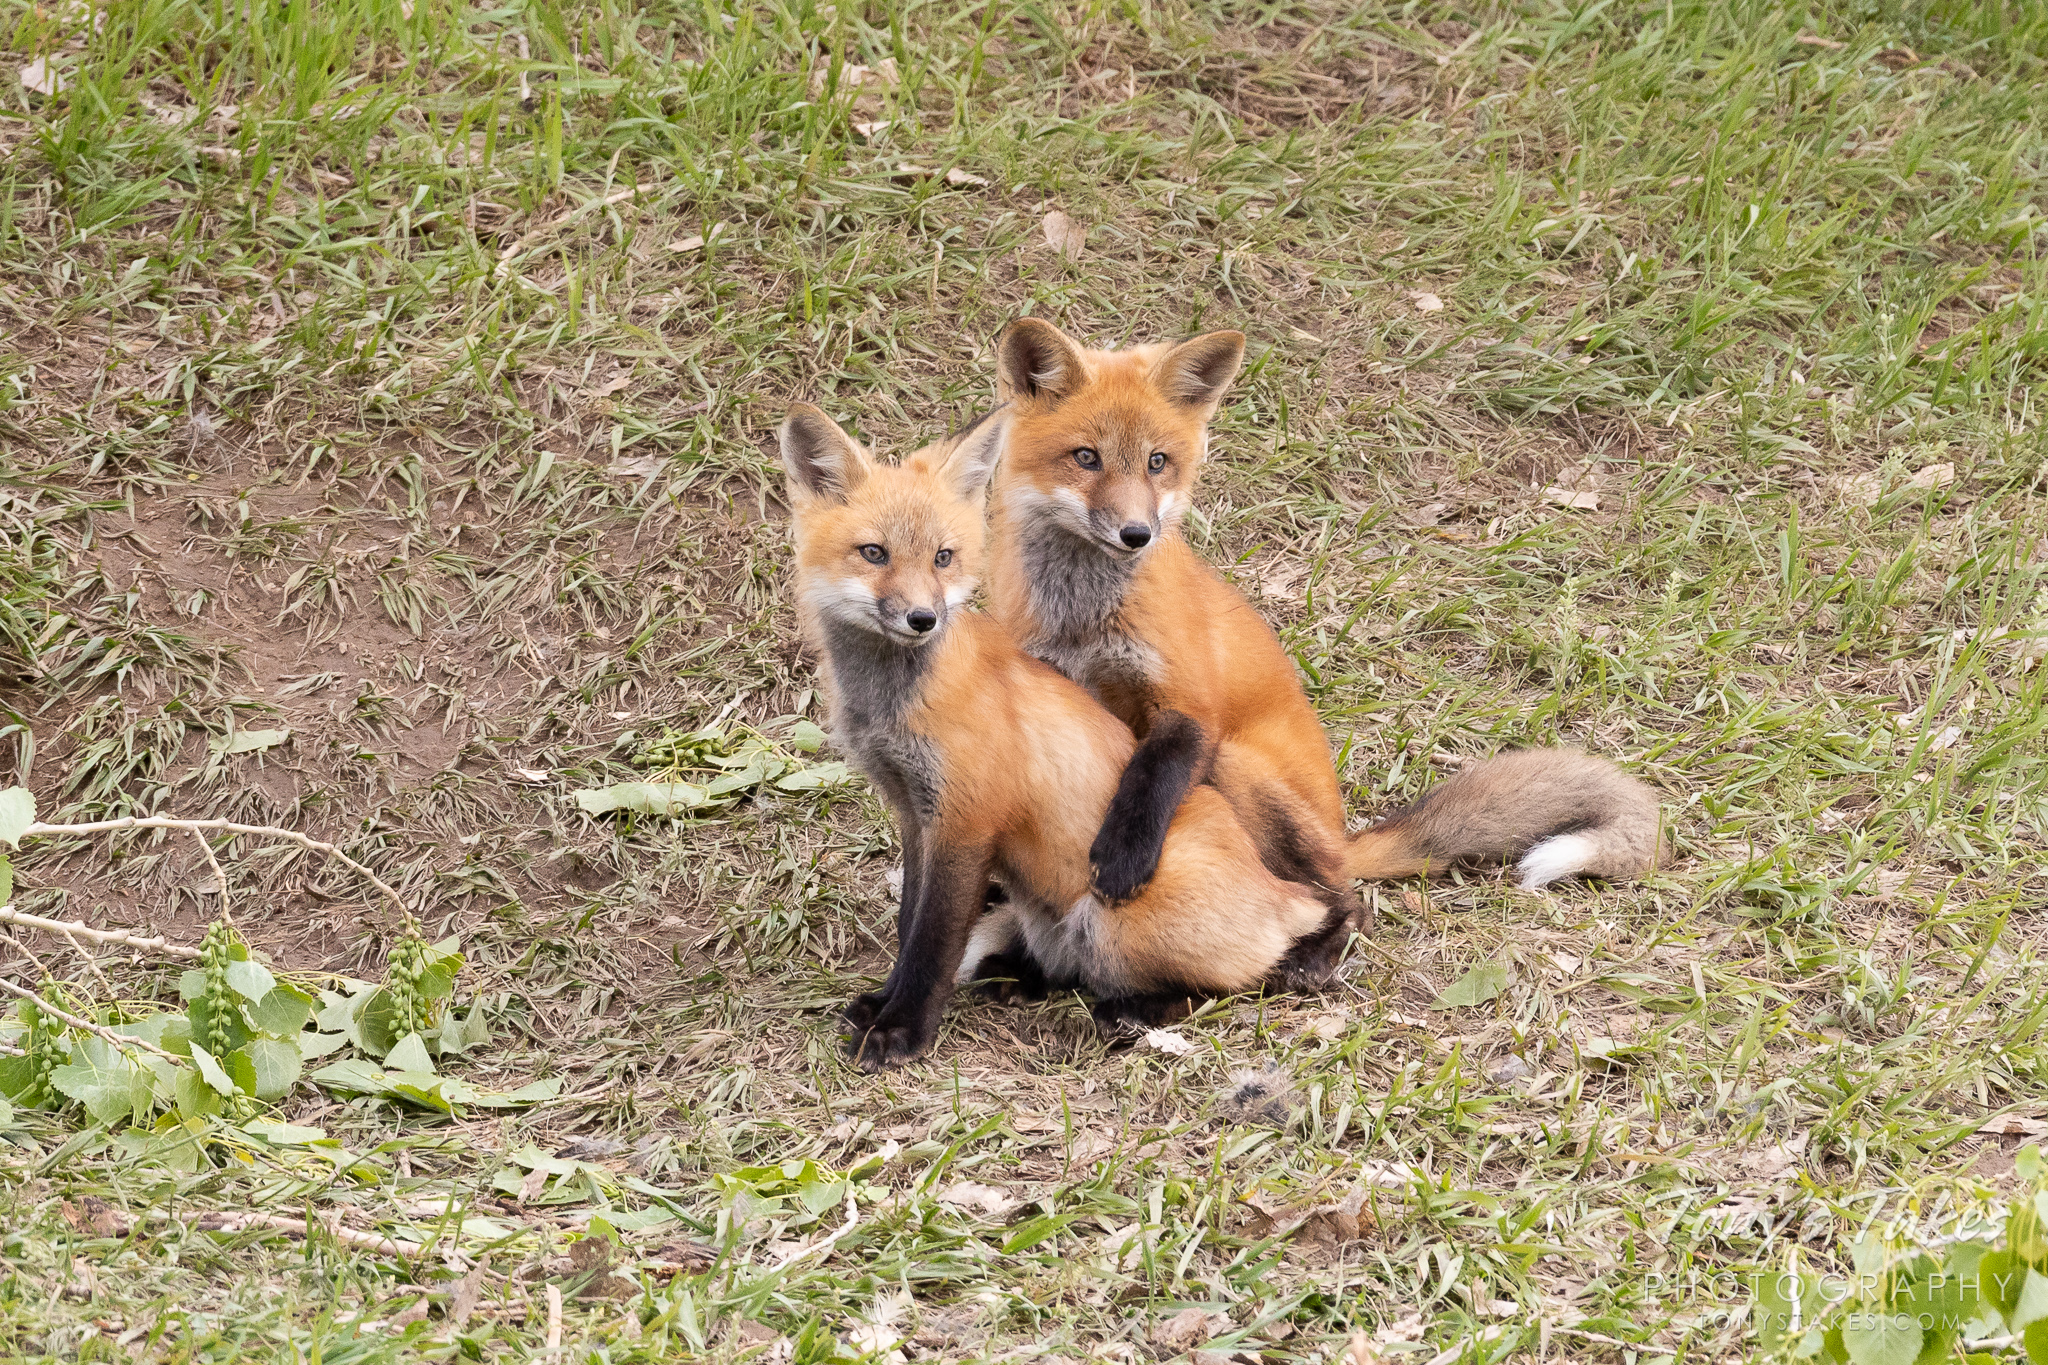 Fox sibling love to bring a smile on Fox Friday